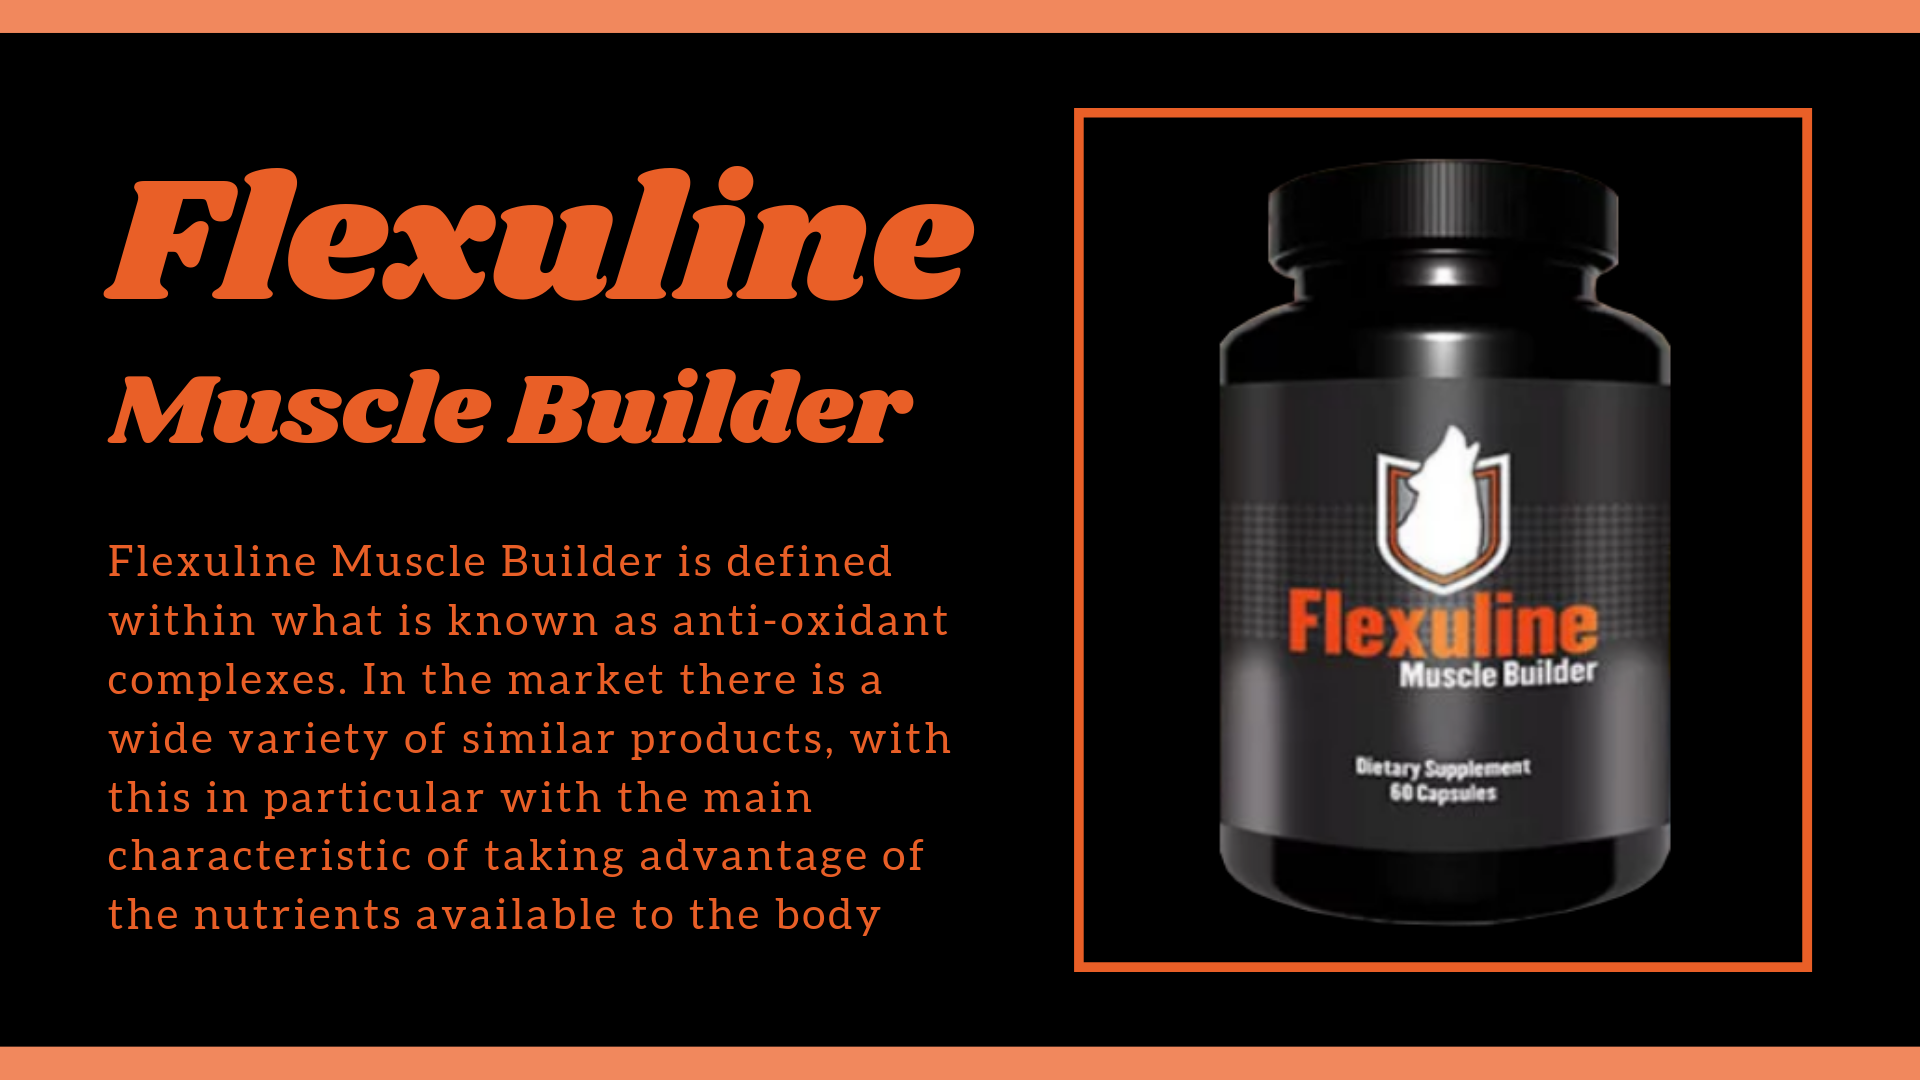 Flexuline Muscle Builder South Africa Review, Scam, Price to Buy